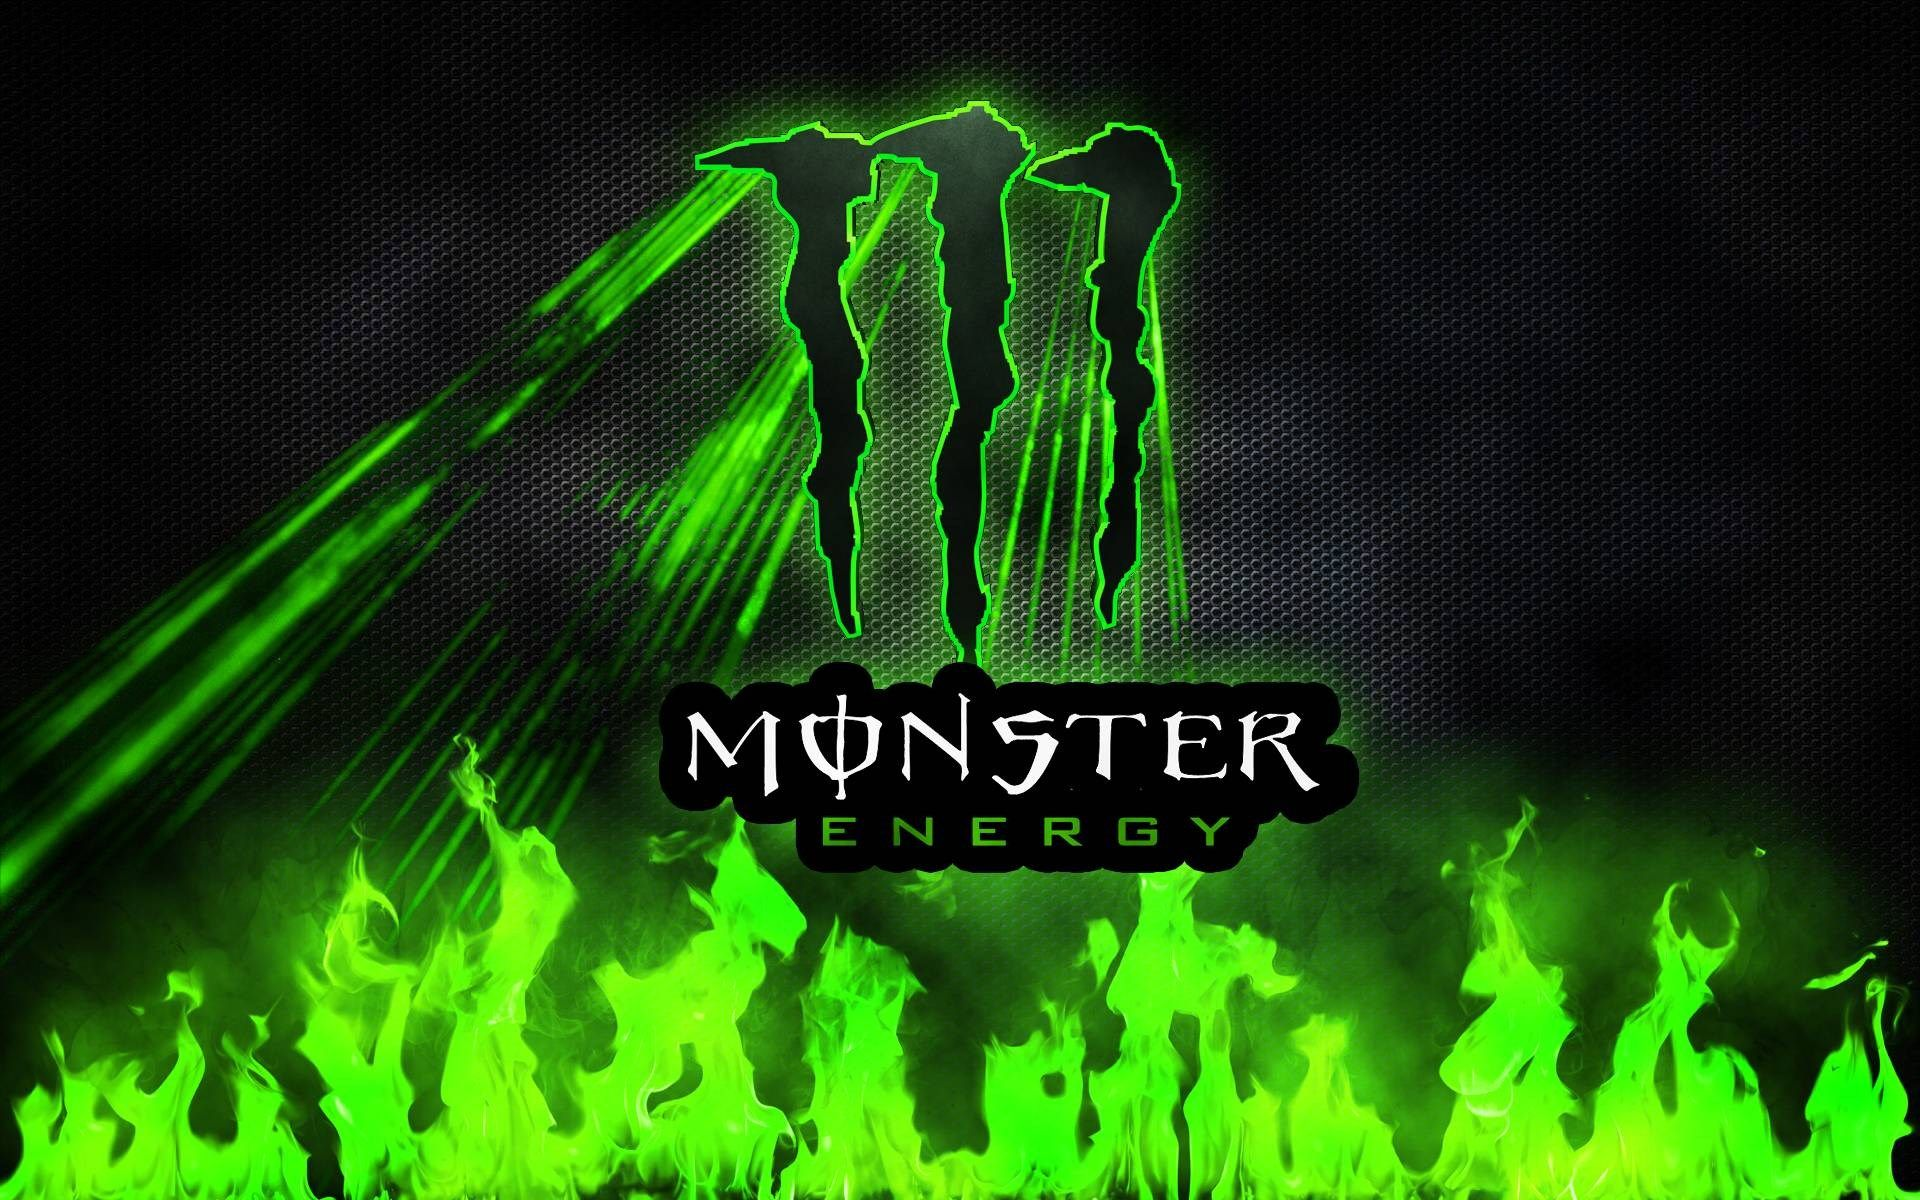 Desktop Monster Energy Hd Wallpaper Image Download Ololoshenka